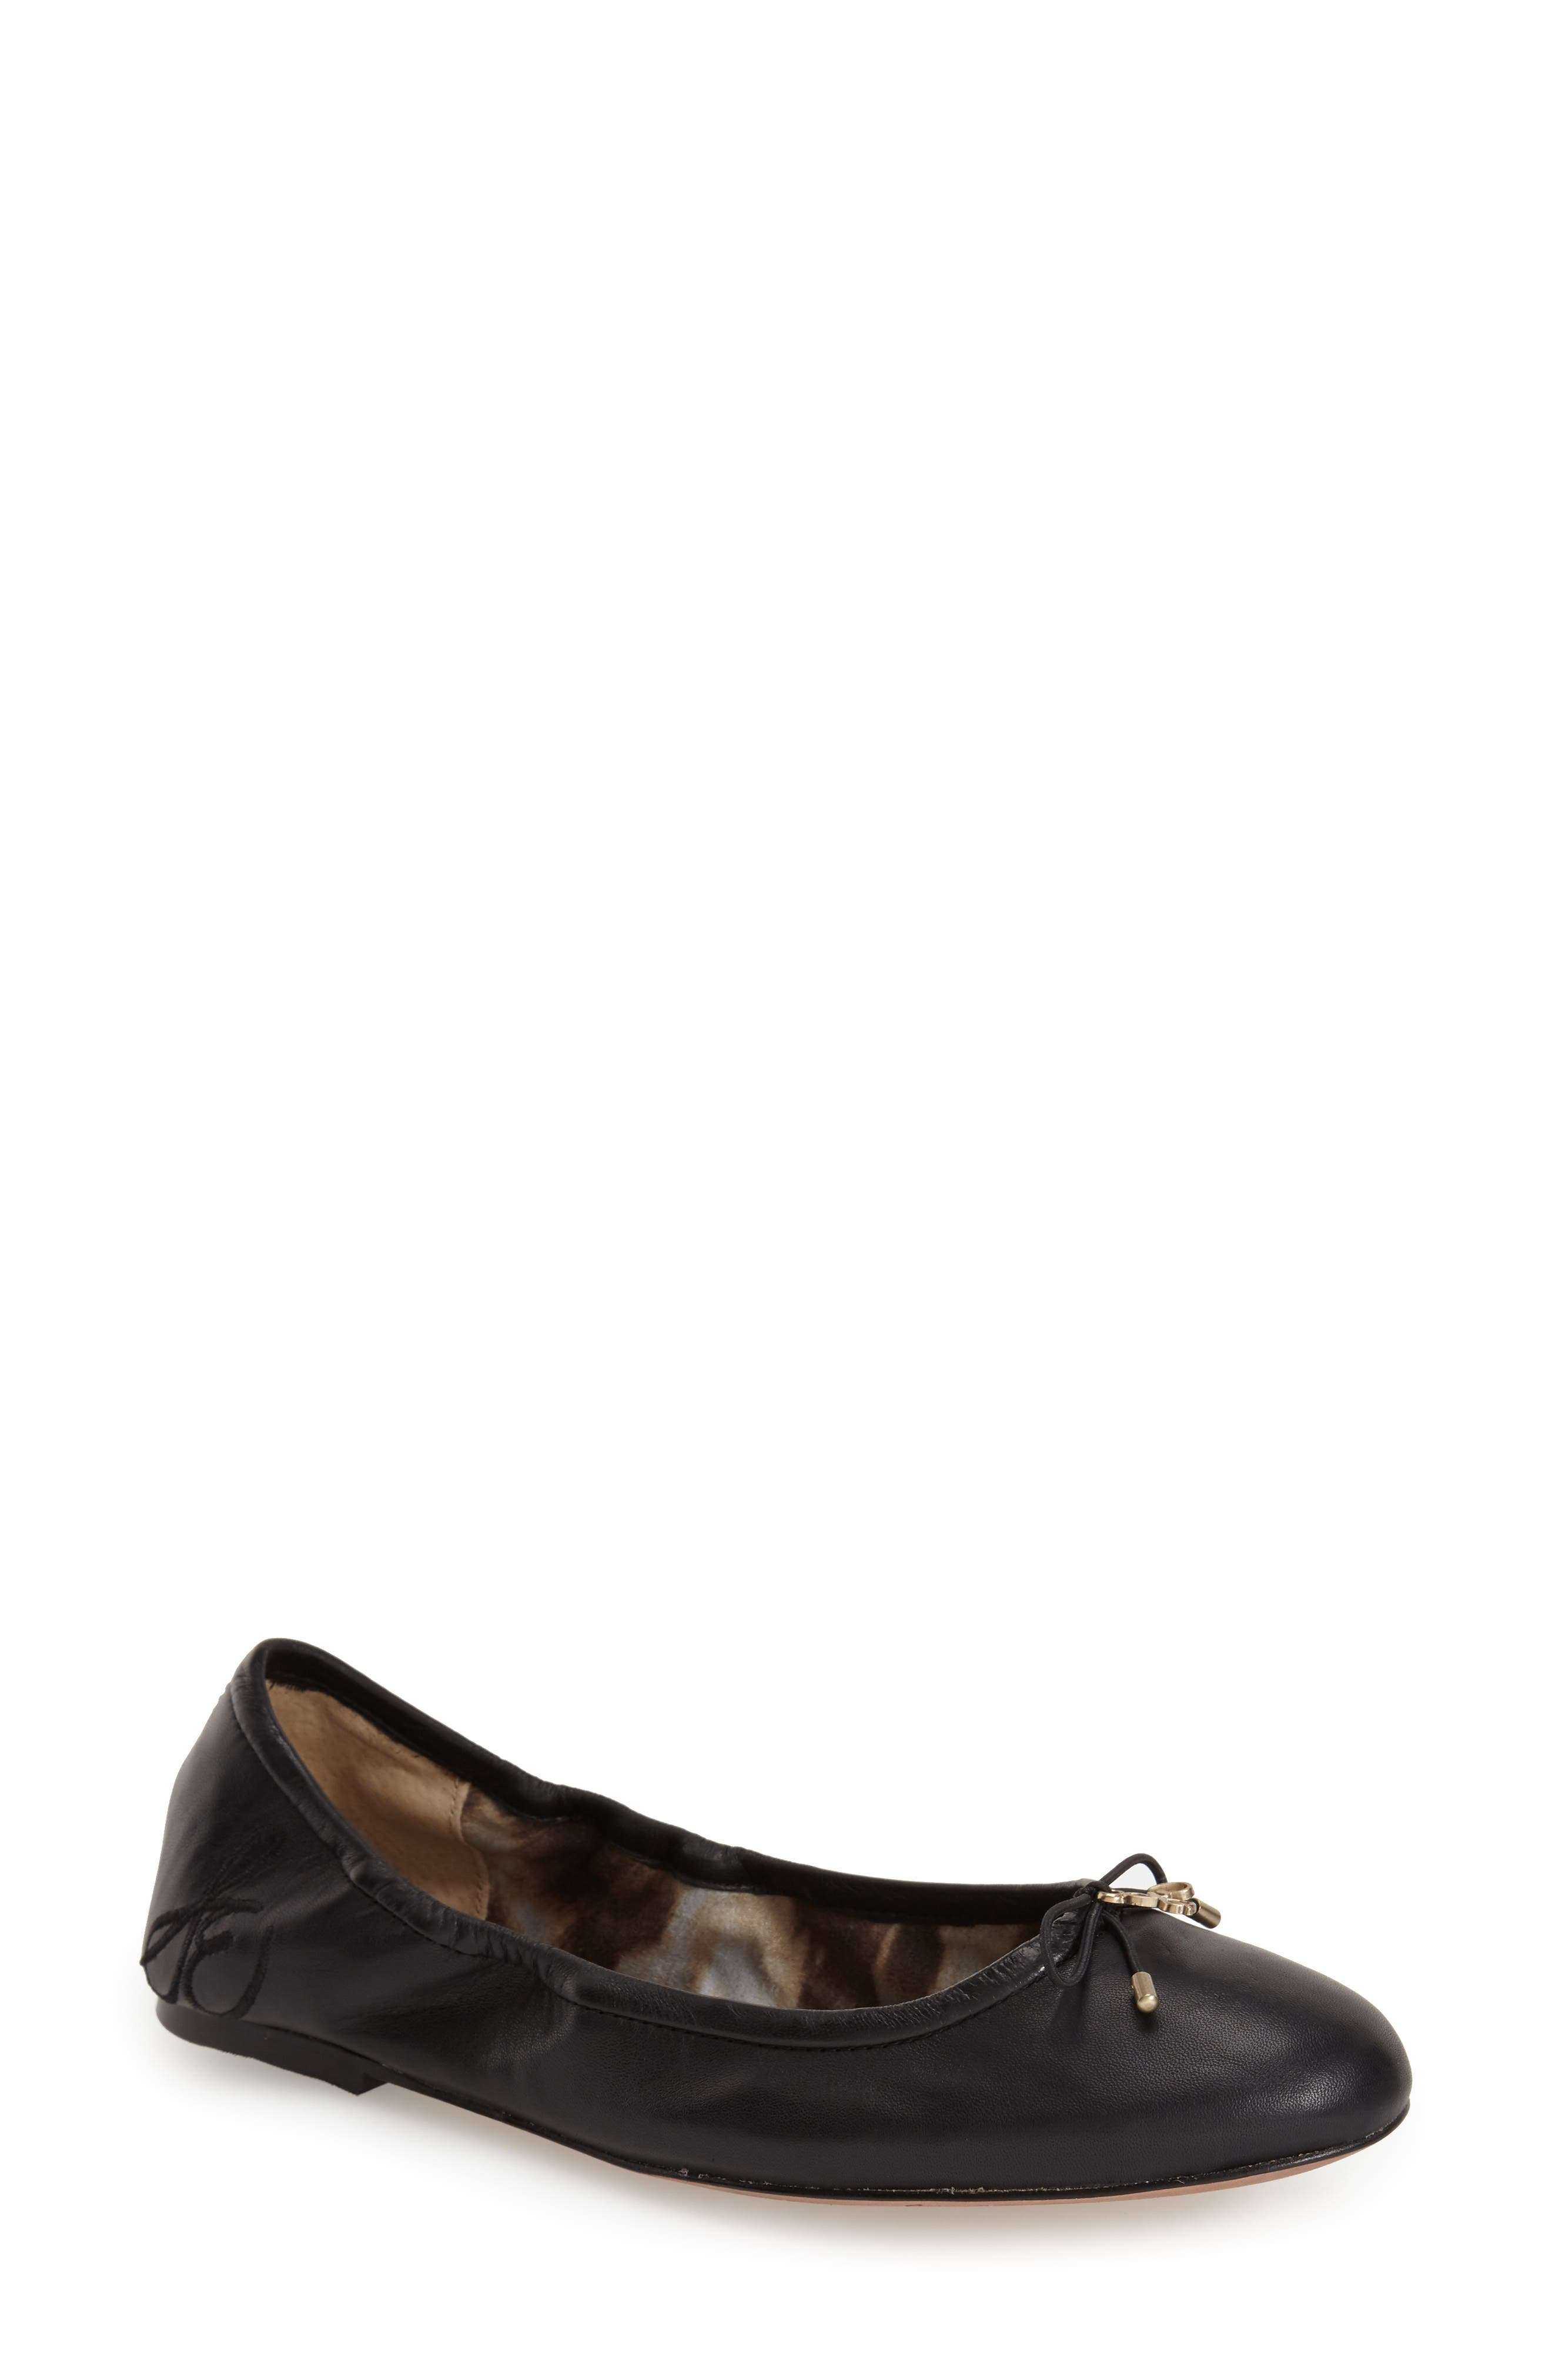 Alternate Image 1 Selected - Sam Edelman 'Felicia' Flat